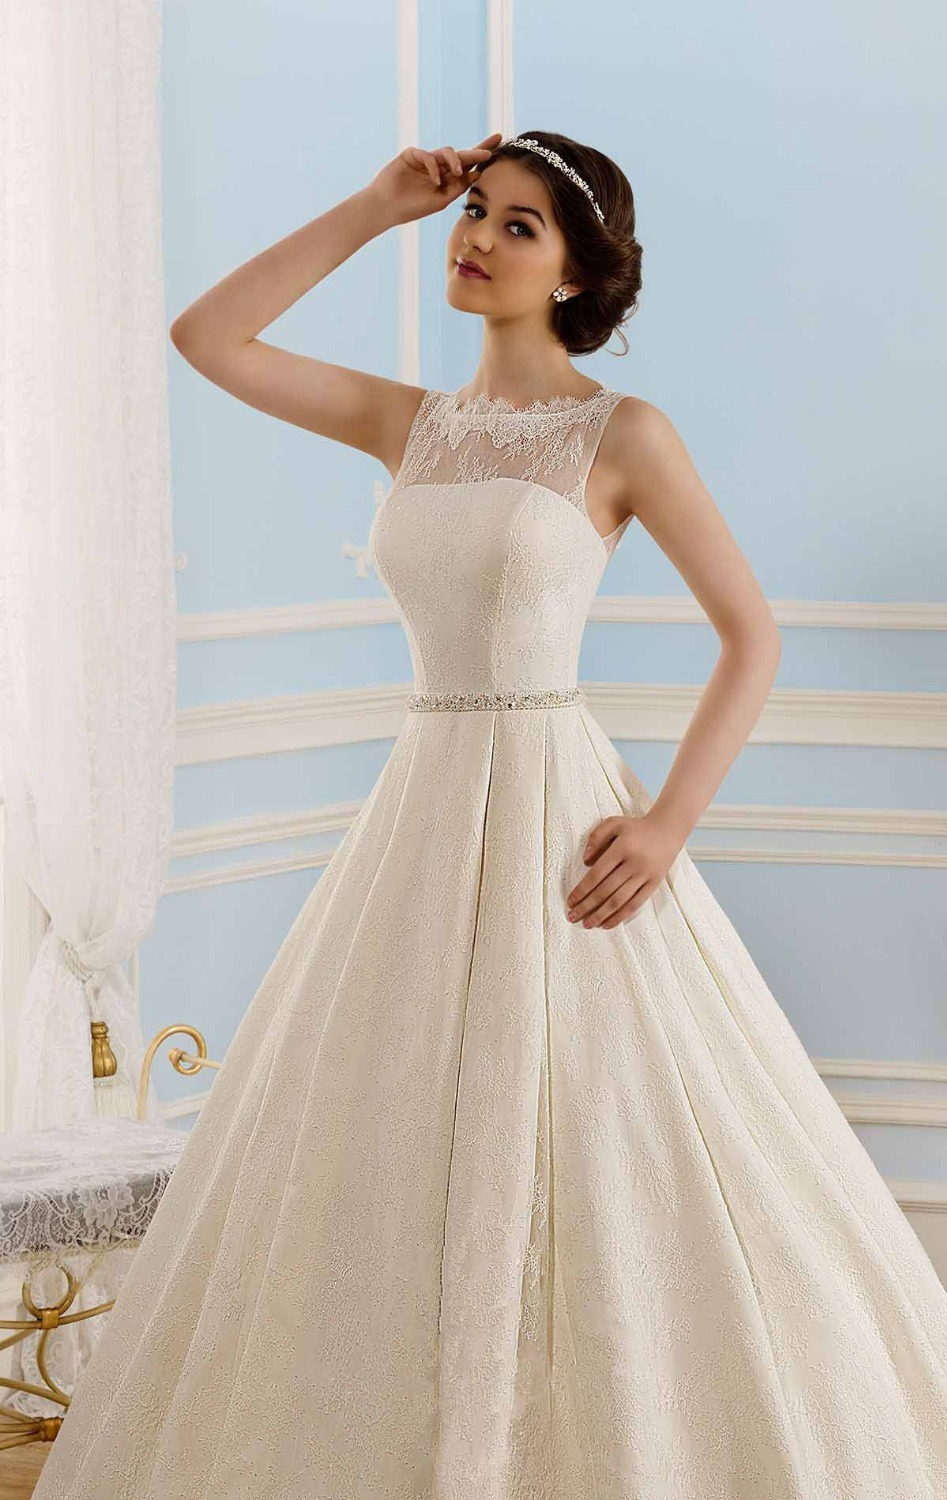 Free Shipping WD 1414 Keyhole Back Lace Over Satin Ball Gown Cinderella Wedding Dress Princess Cut Sale In Dresses From Weddings